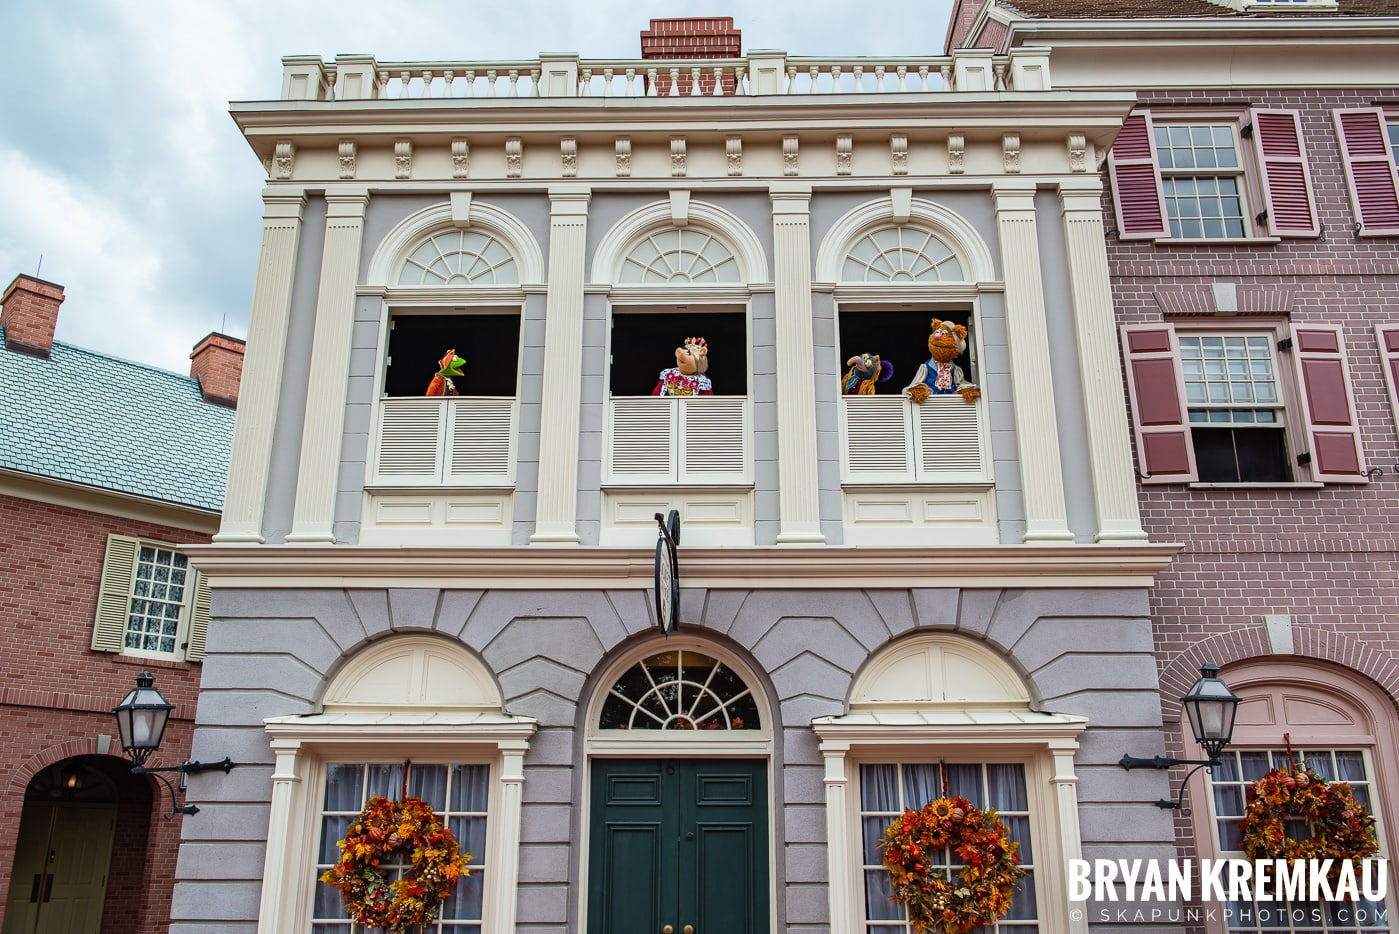 Walt Disney World Vacation: Days 1 & 2 (Disney Springs & Magic Kingdom, Epcot) September 29th - 30th 2019 (13)